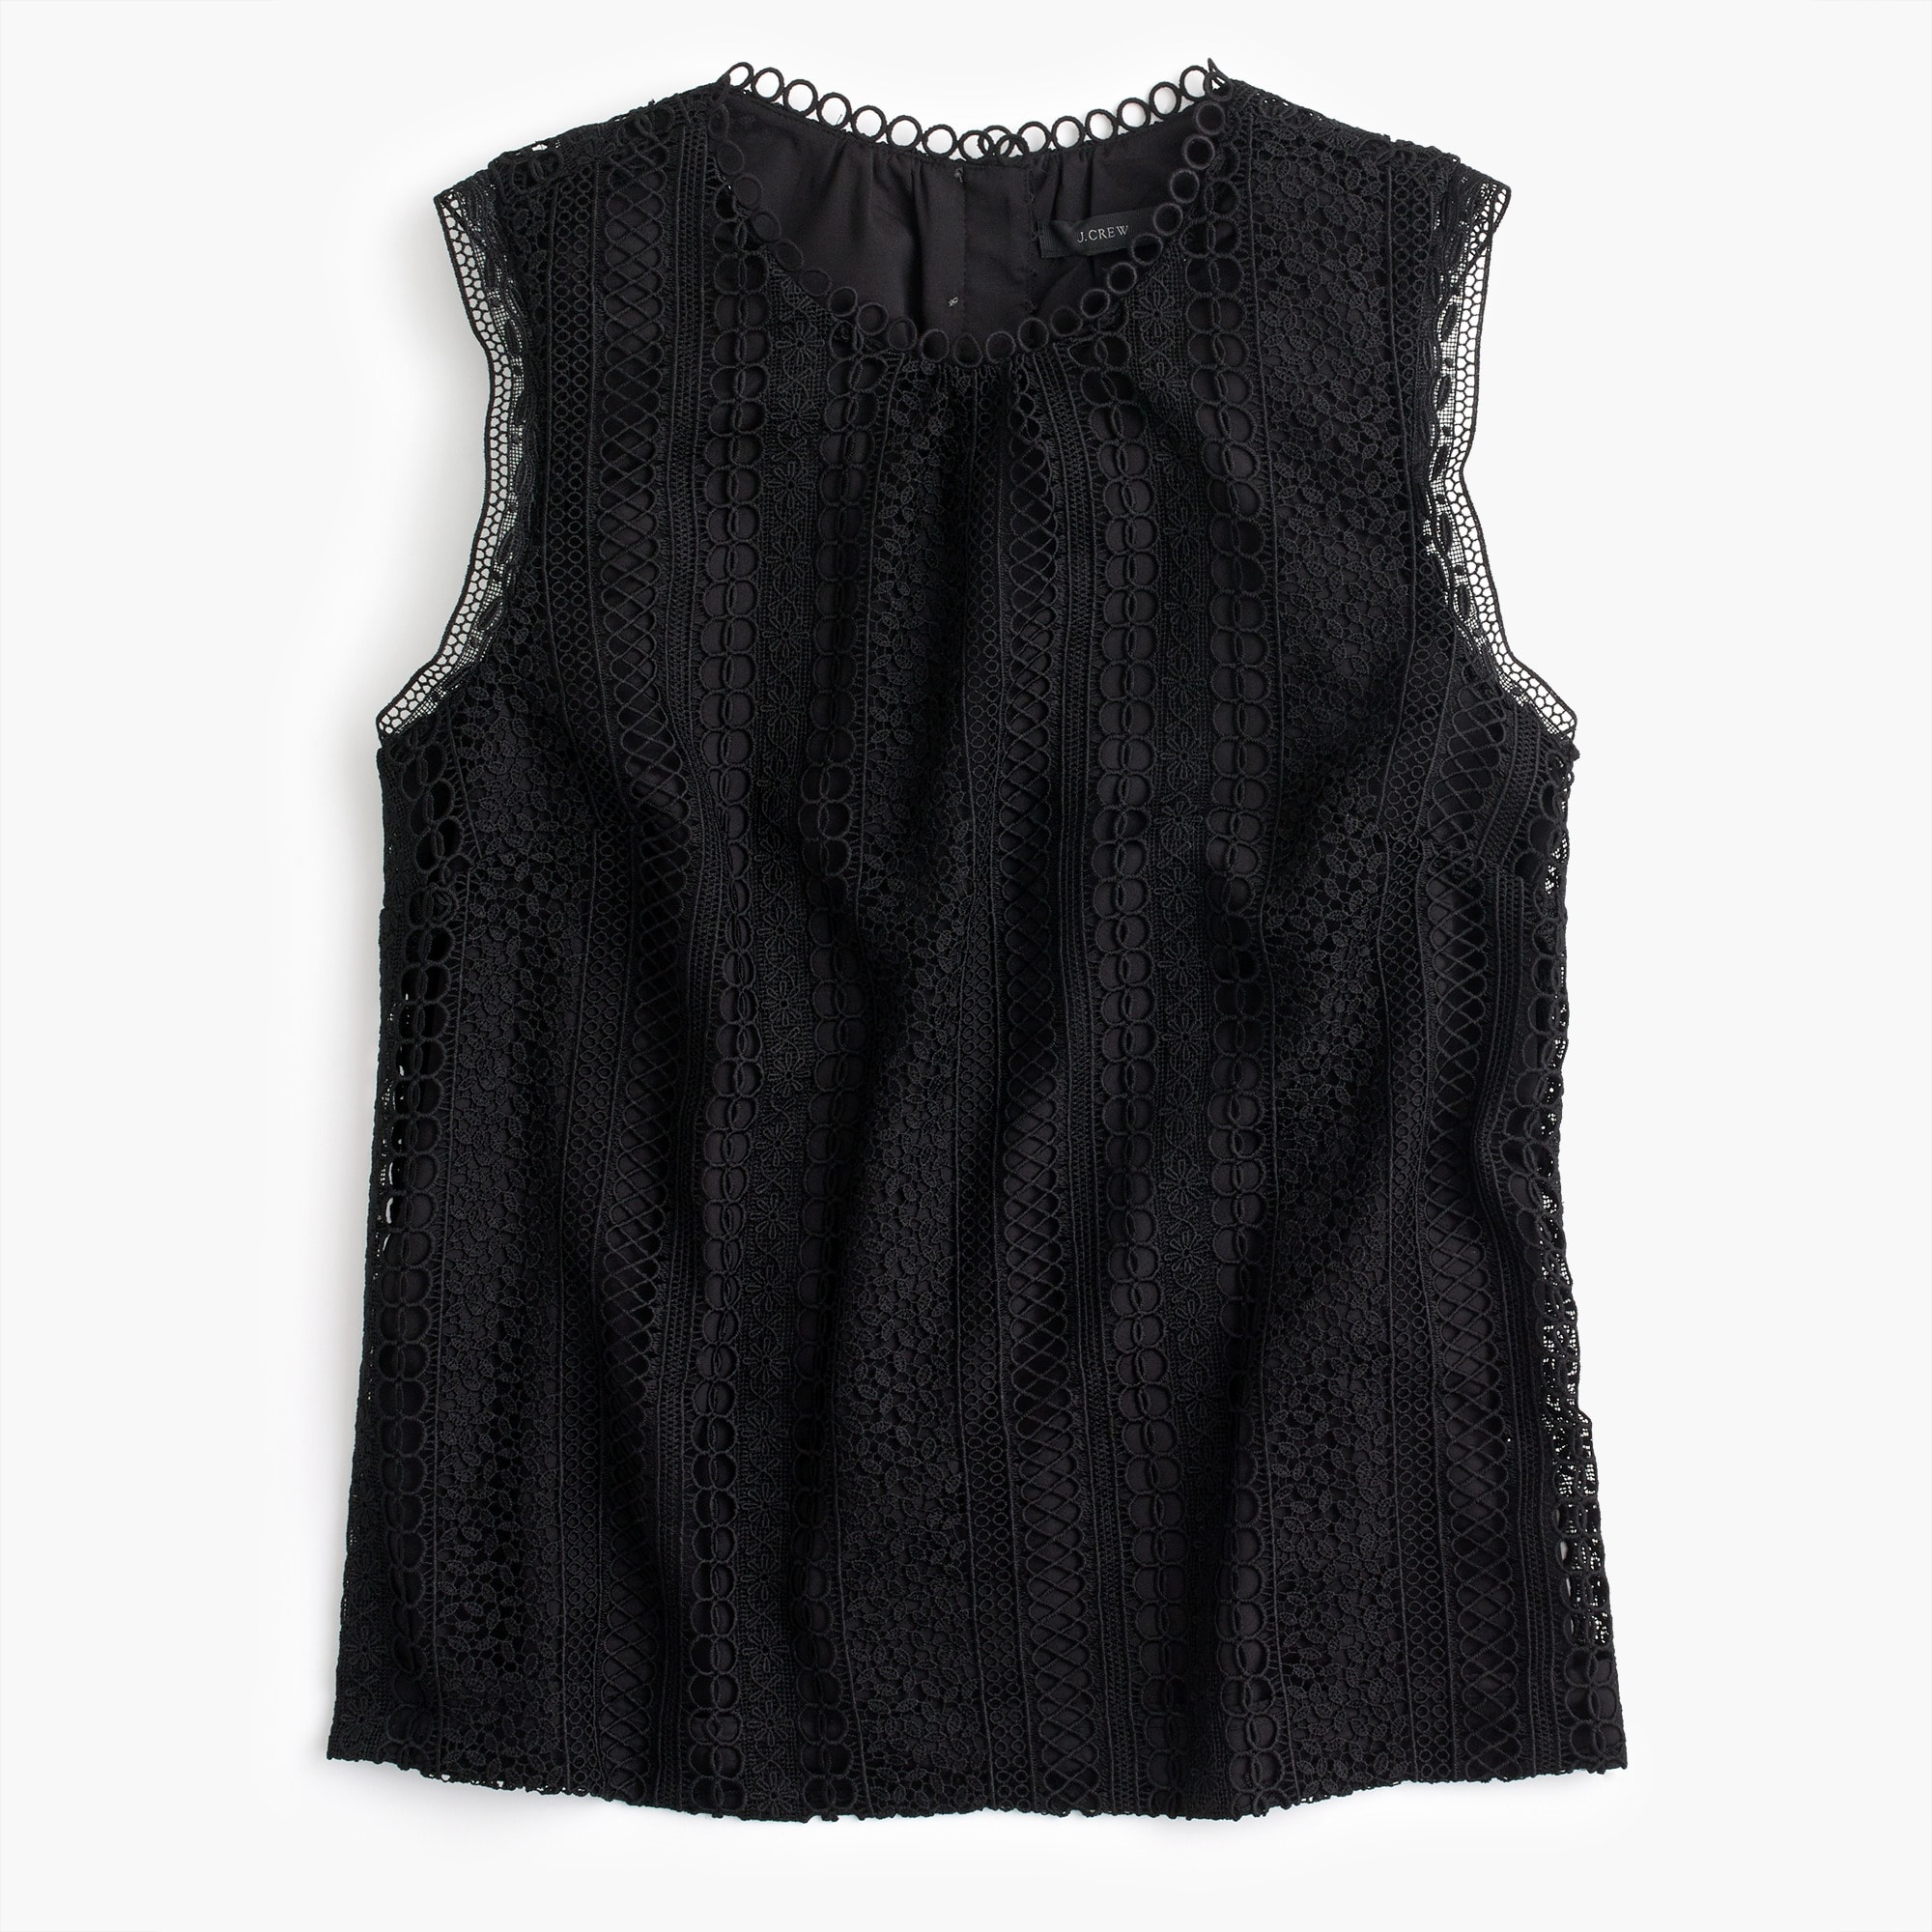 women's mixed lace top - women's shirts